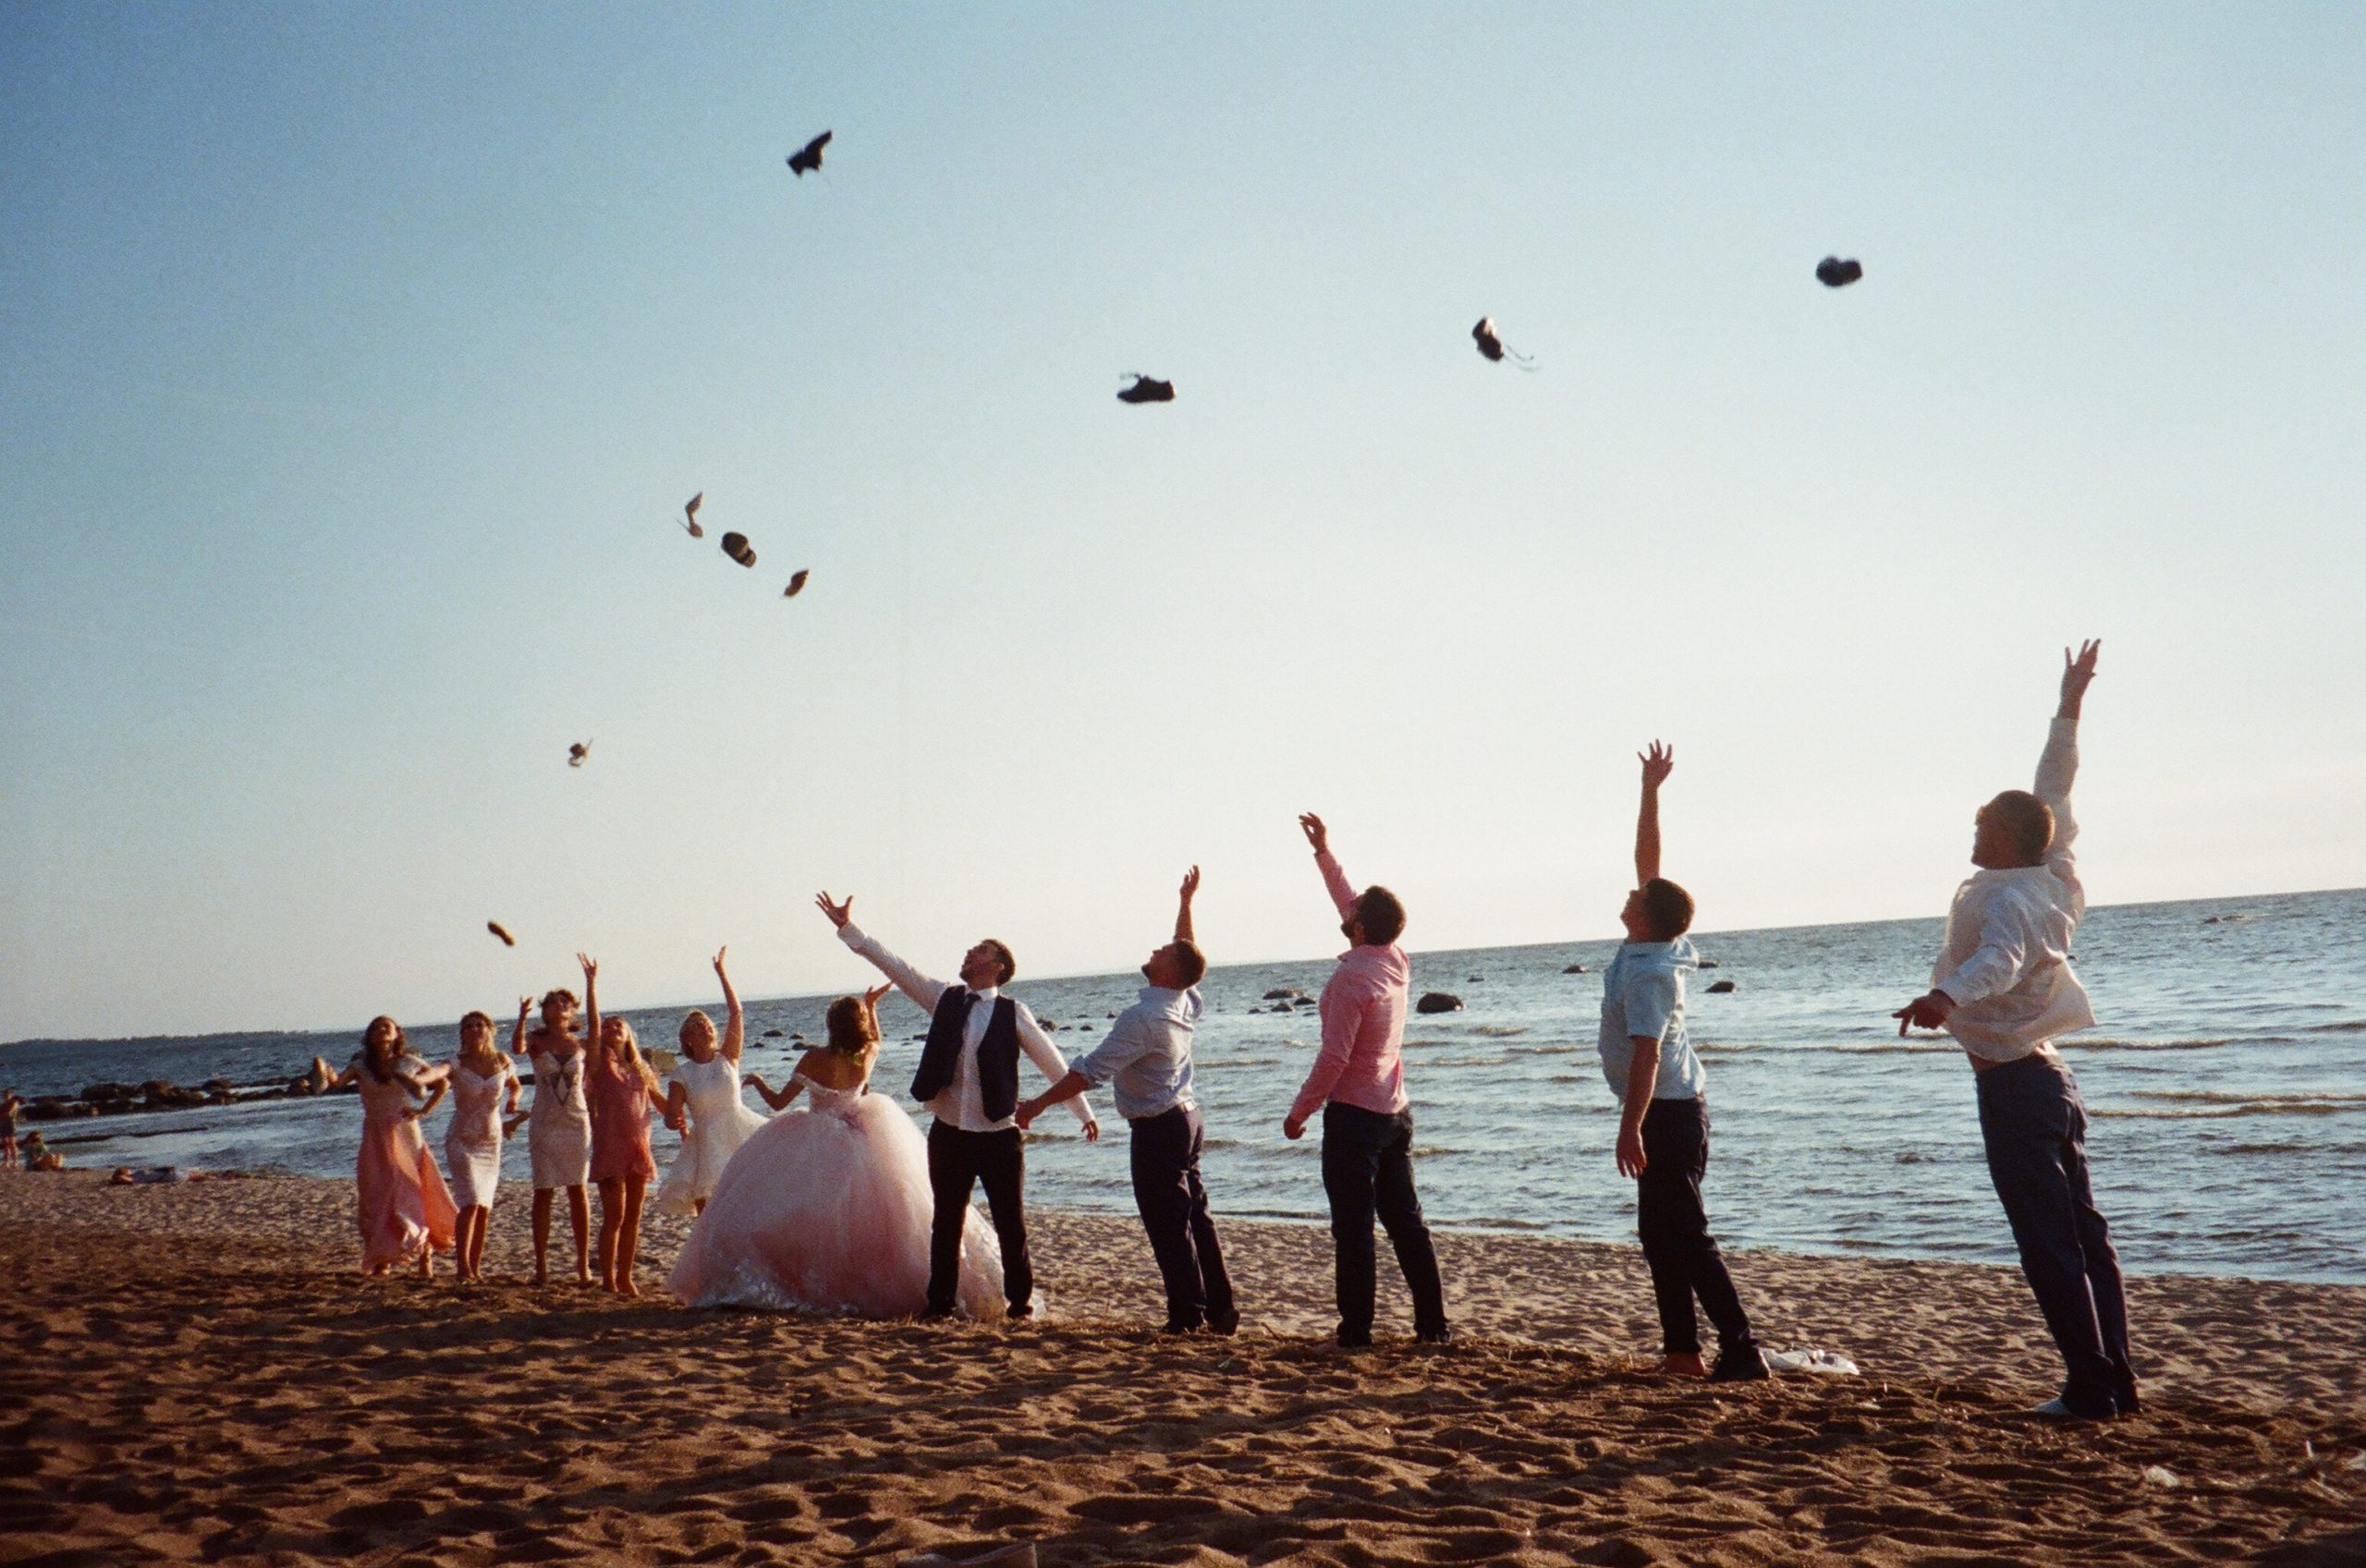 people-throwing-things-near-the-seashore-1371801